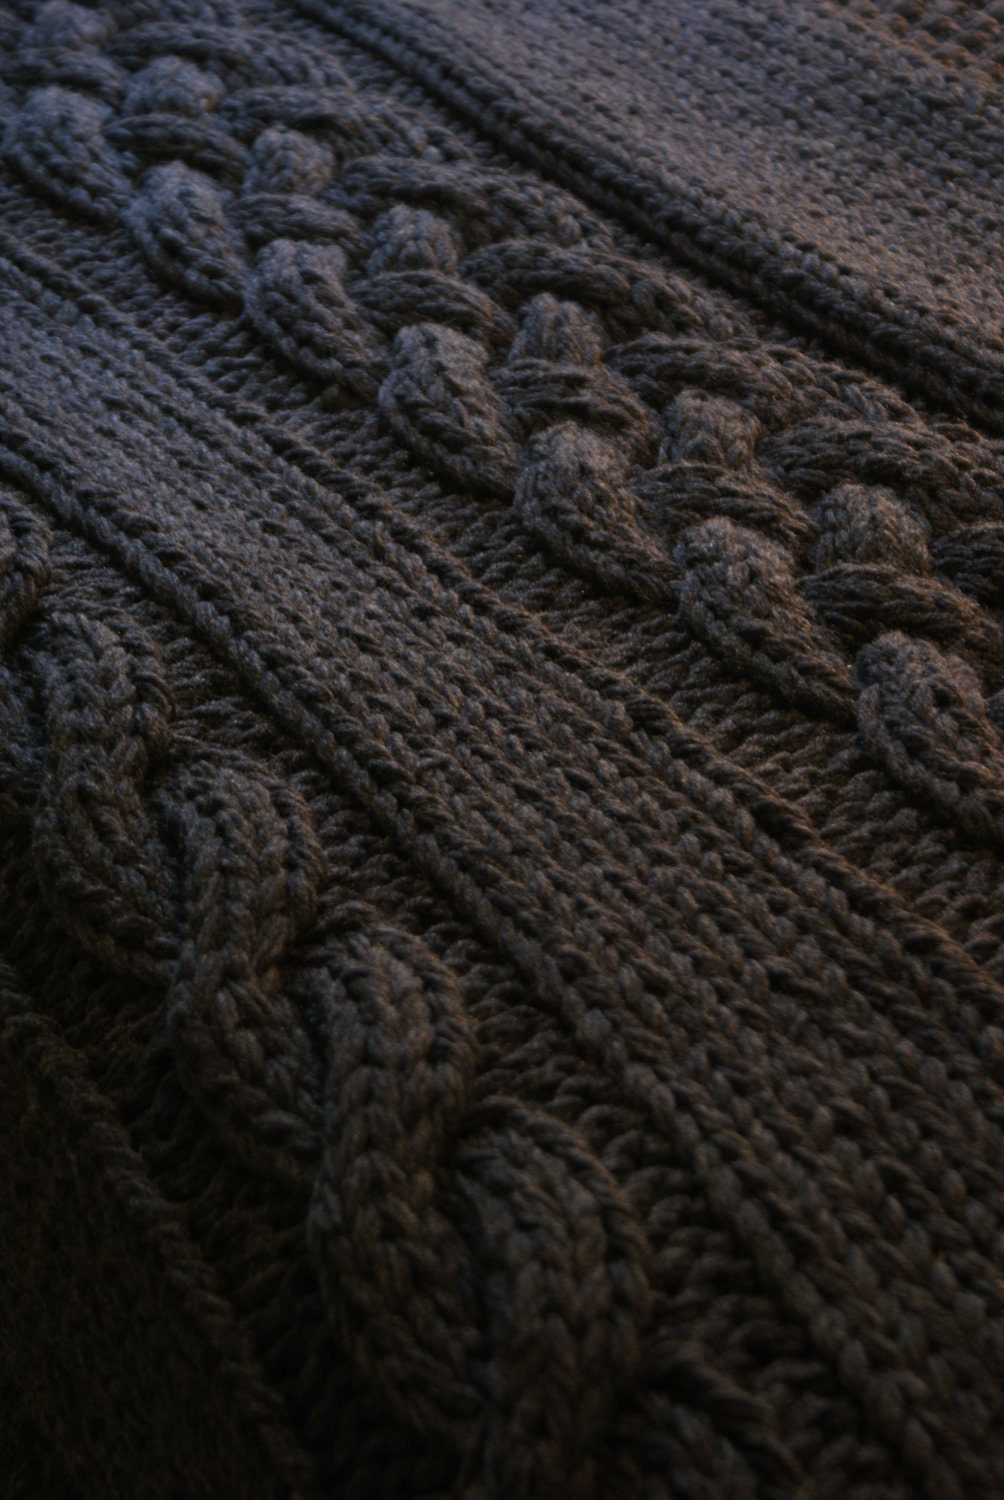 Chunky Cable Knit Blanket Pattern : Pattern Throw Blanket / Rug Super Chunky Double Cable by ...